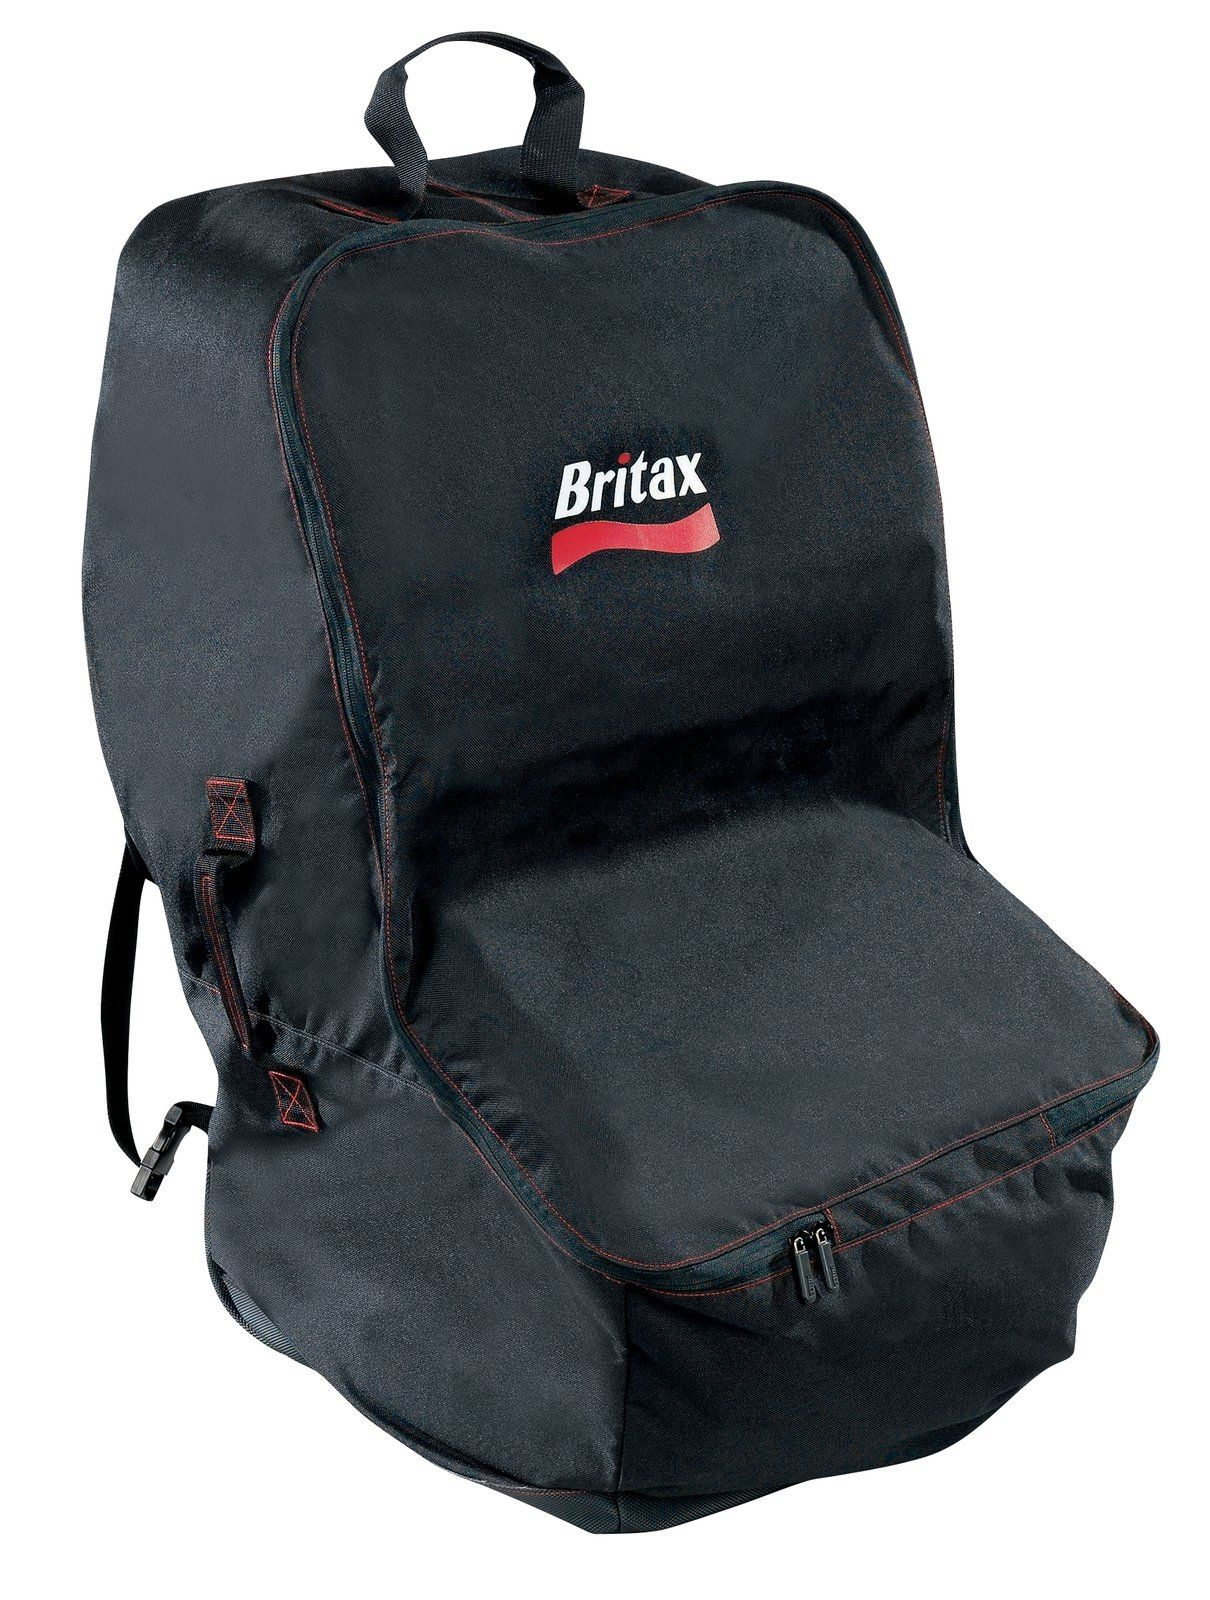 Britax Car Seat Travel Bag Best Price Car seat travel